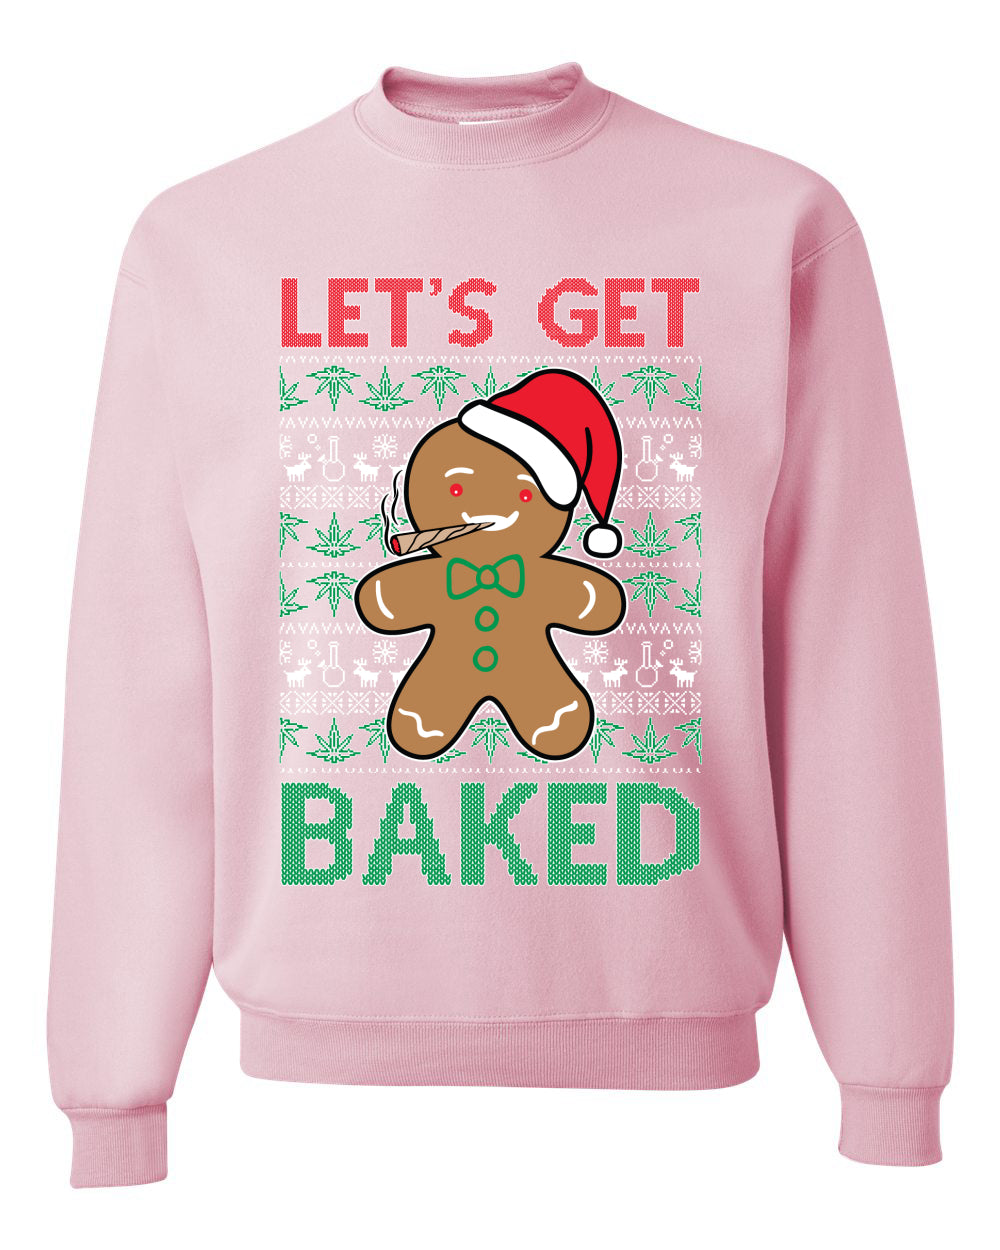 Lets get Baked Gingerbread Weed Stoner Ugly Christmas Sweater  Christmas Unisex Crewneck Graphic Sweatshirt